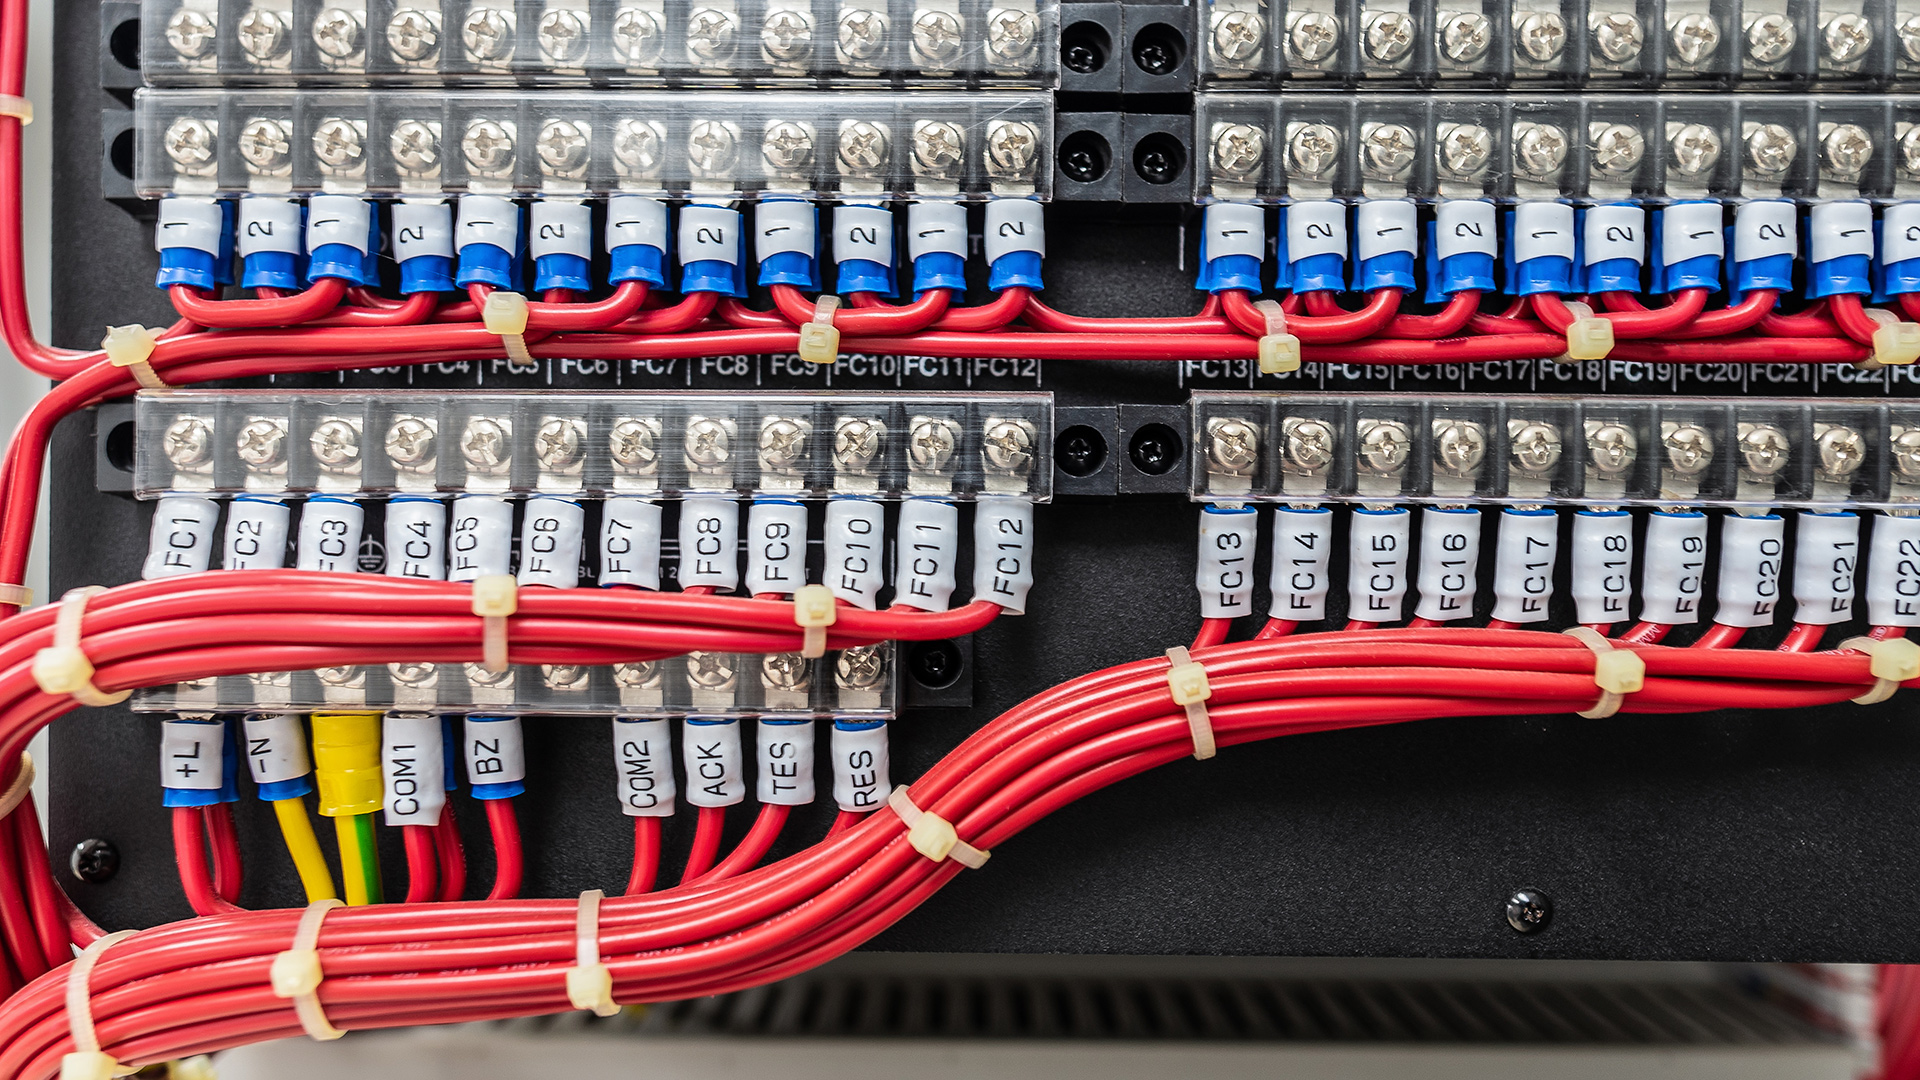 [DIAGRAM_5NL]  Control Panel Wiring Colour Codes Per EN 60204-1 Guide - Rowse | International Wiring Color Code Machine |  | Rowse